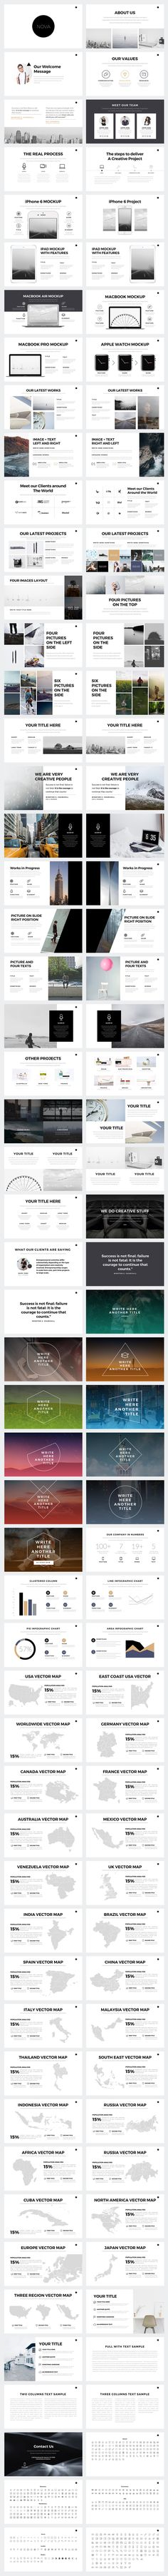 Explore more than presentation templates to use for PowerPoint, Keynote, infographics, pitchdecks, and digital marketing. Web Design, Slide Design, Page Design, Book Design, Layout Design, Presentation Deck, Business Presentation, Powerpoint Presentation Templates, Keynote Template